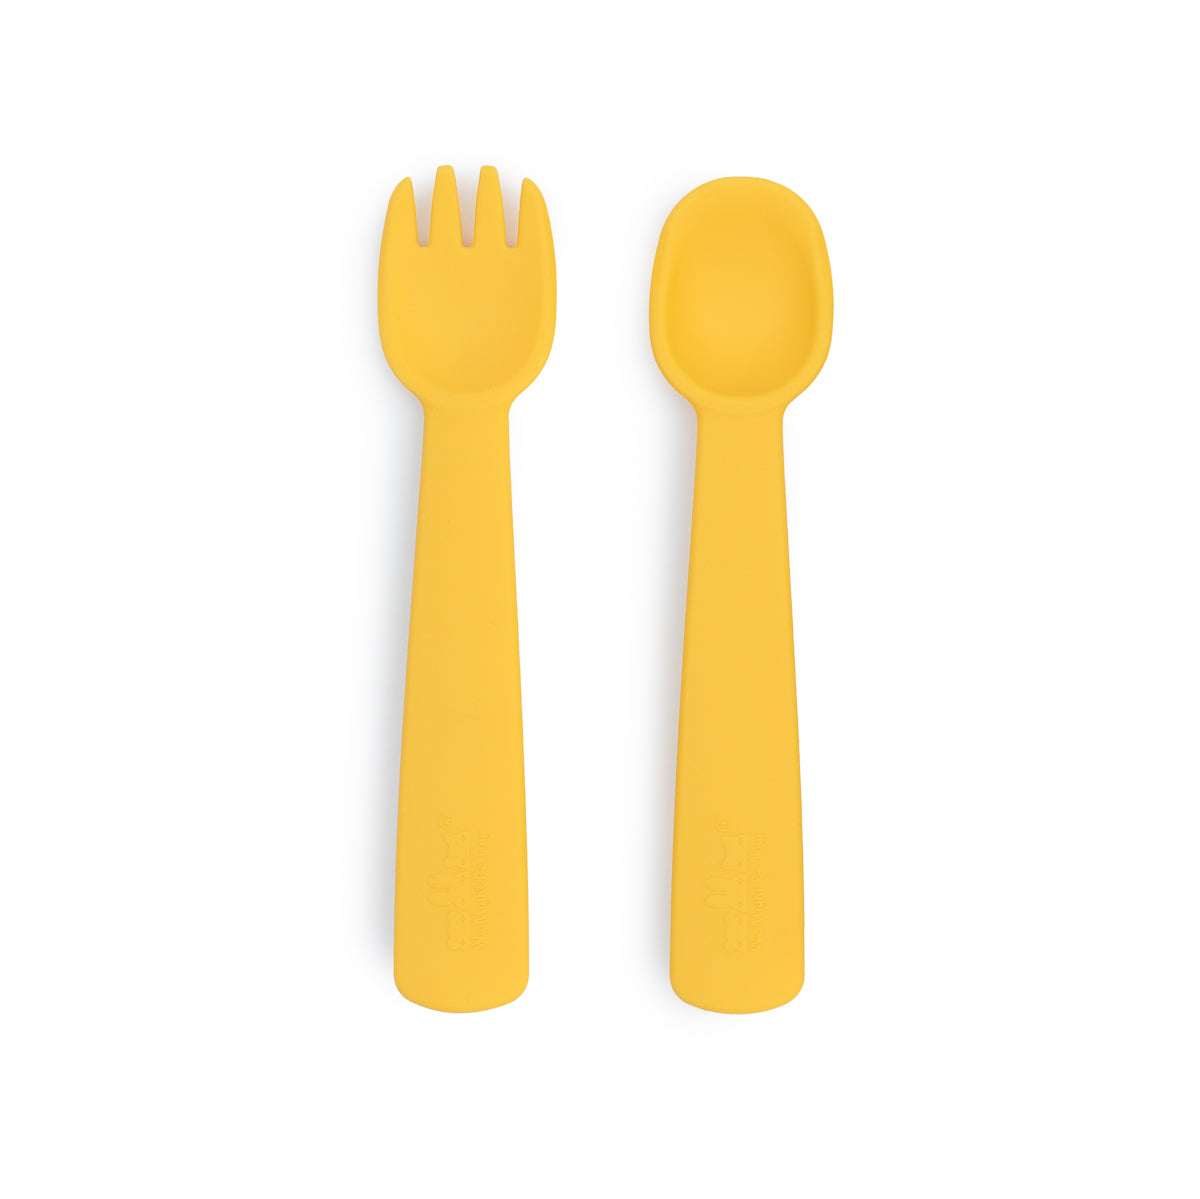 Feedie Fork & Spoon Set - Yellow